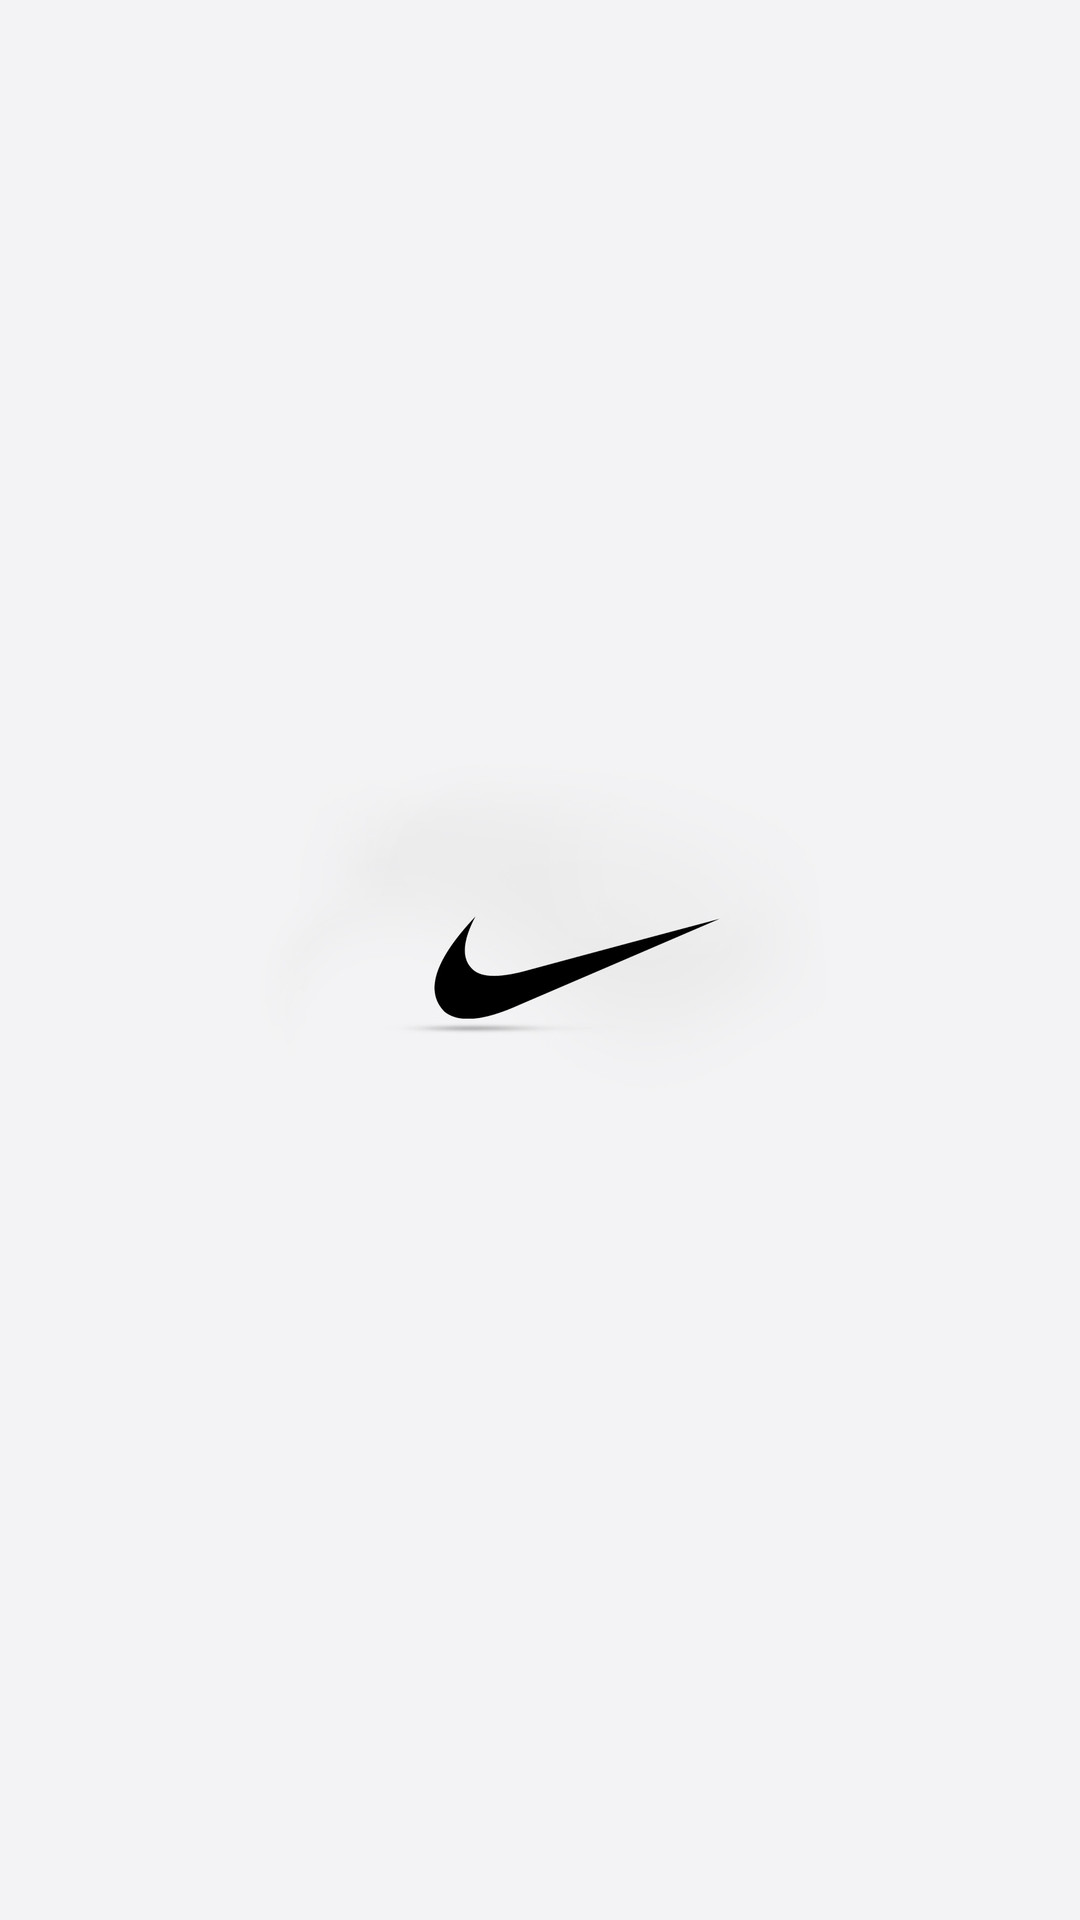 Nike htc one wallpaper – Best htc one wallpapers